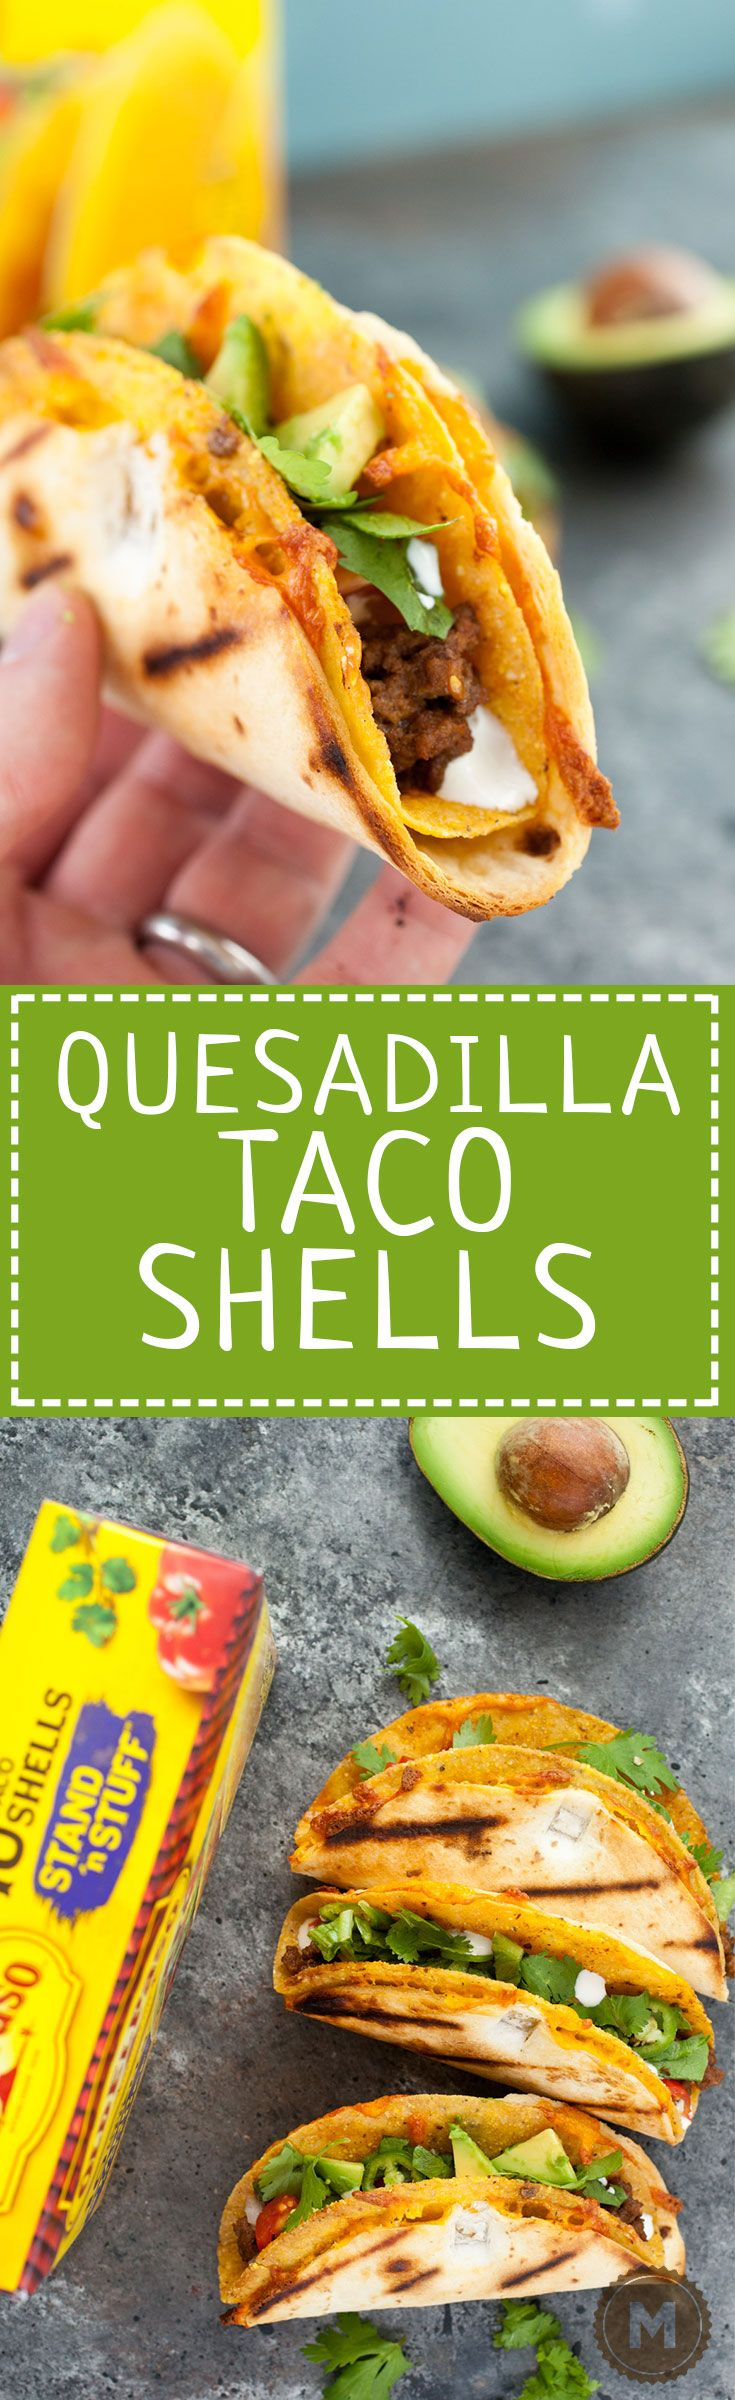 Quesadilla Taco Shells: Want to kick your taco game up a notch this year? Make these delicious quesadilla taco shells and stuff them to your heart's desire!   macheesmo.com